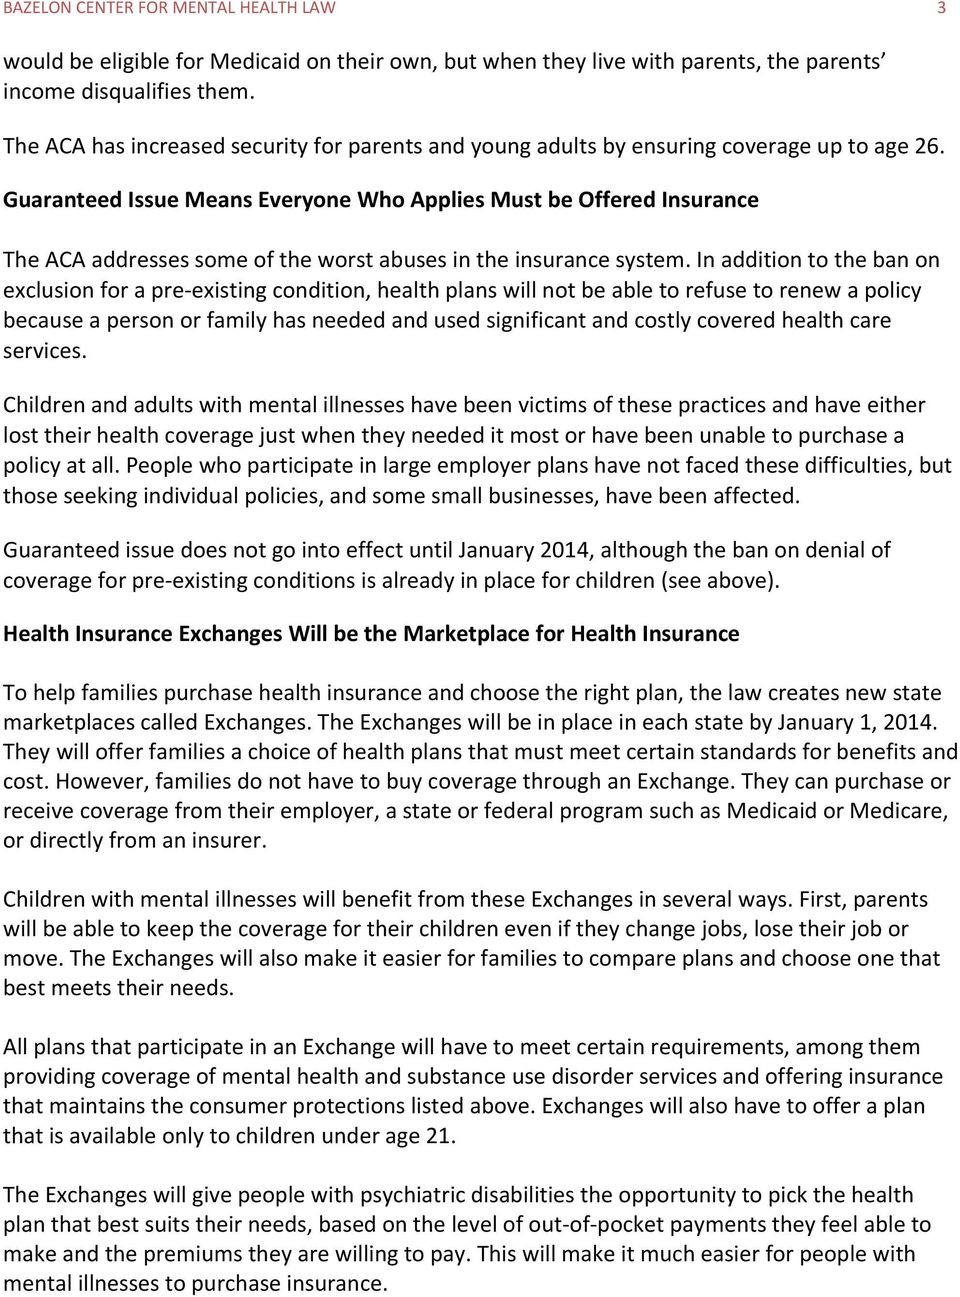 How Health Reform Will Help Children With Mental Health Needs Pdf